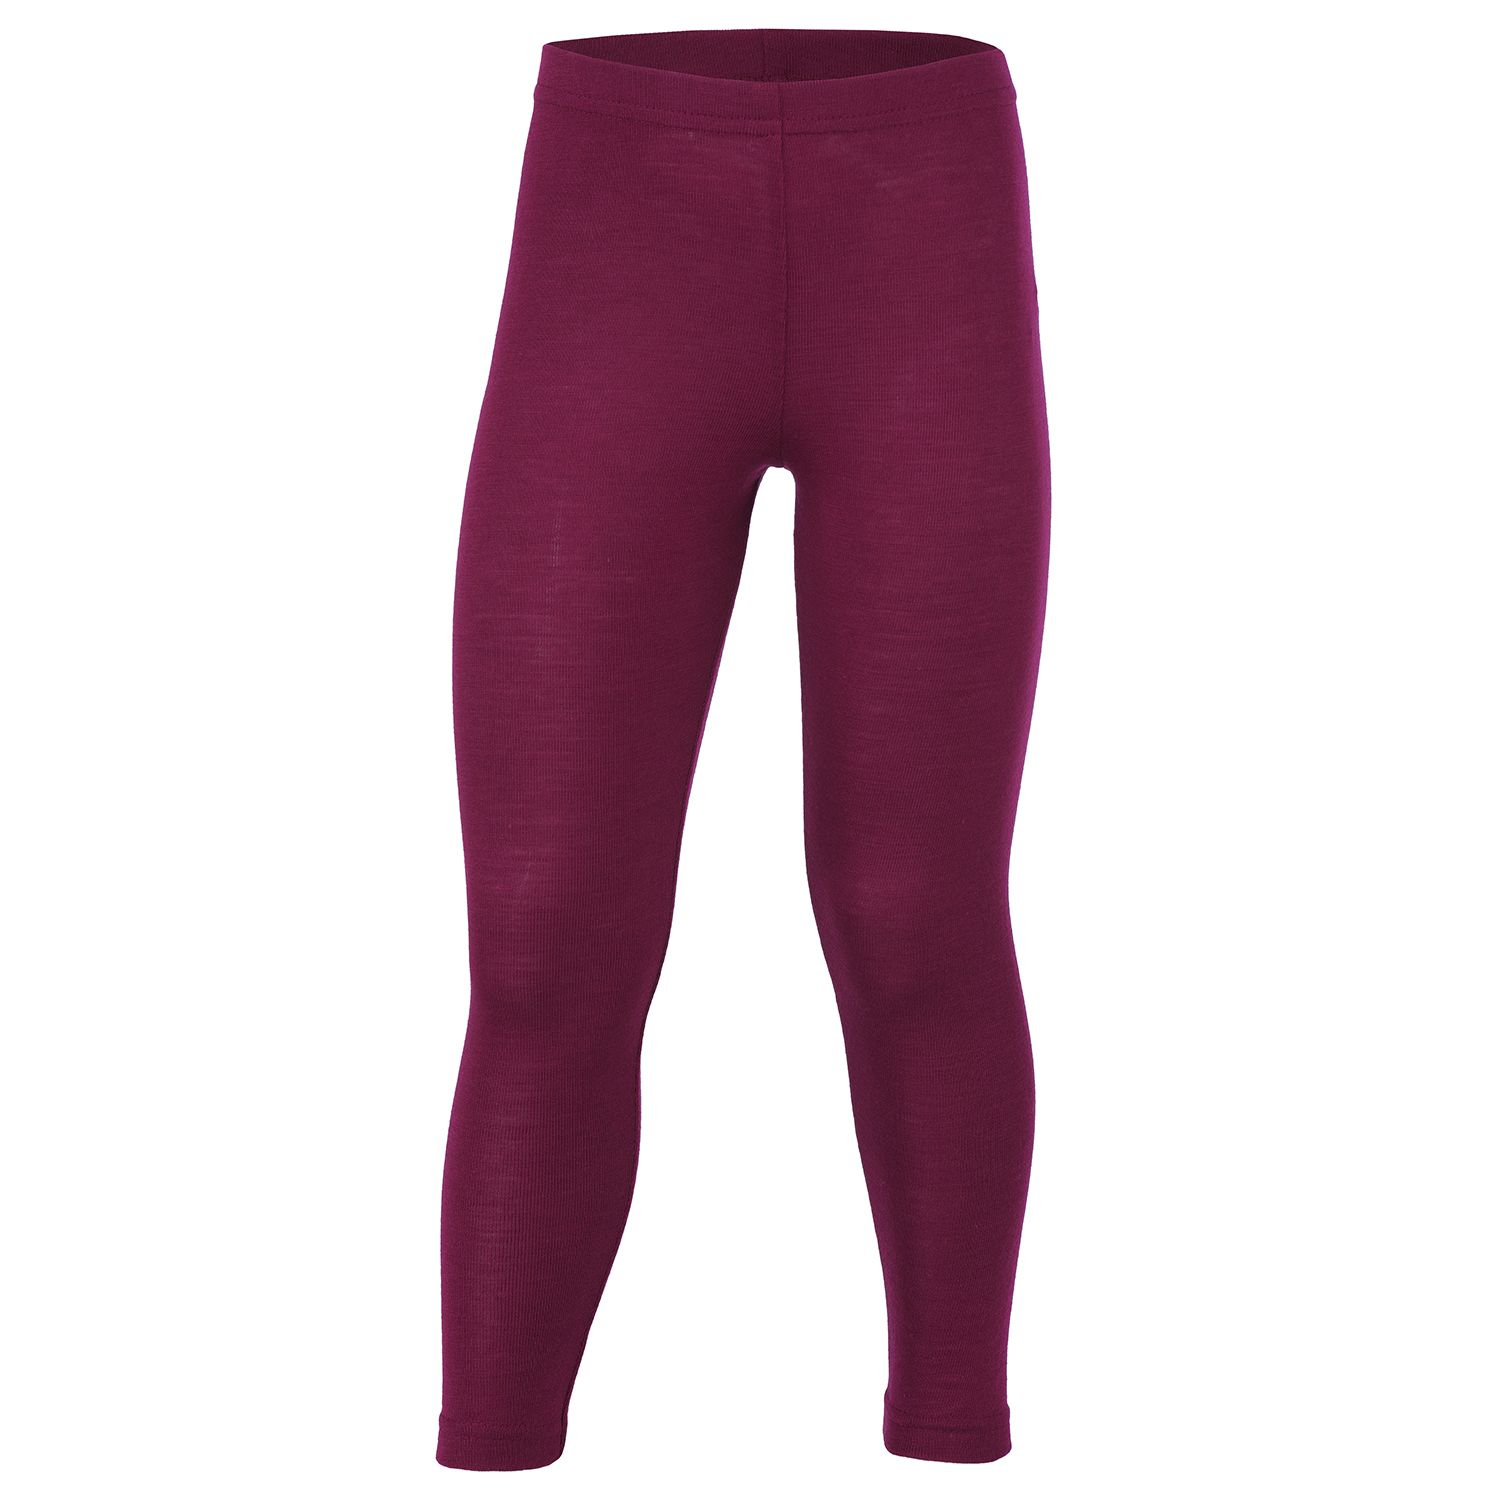 Image of   Engel bukser / leggings, uld/silke - Orchidee